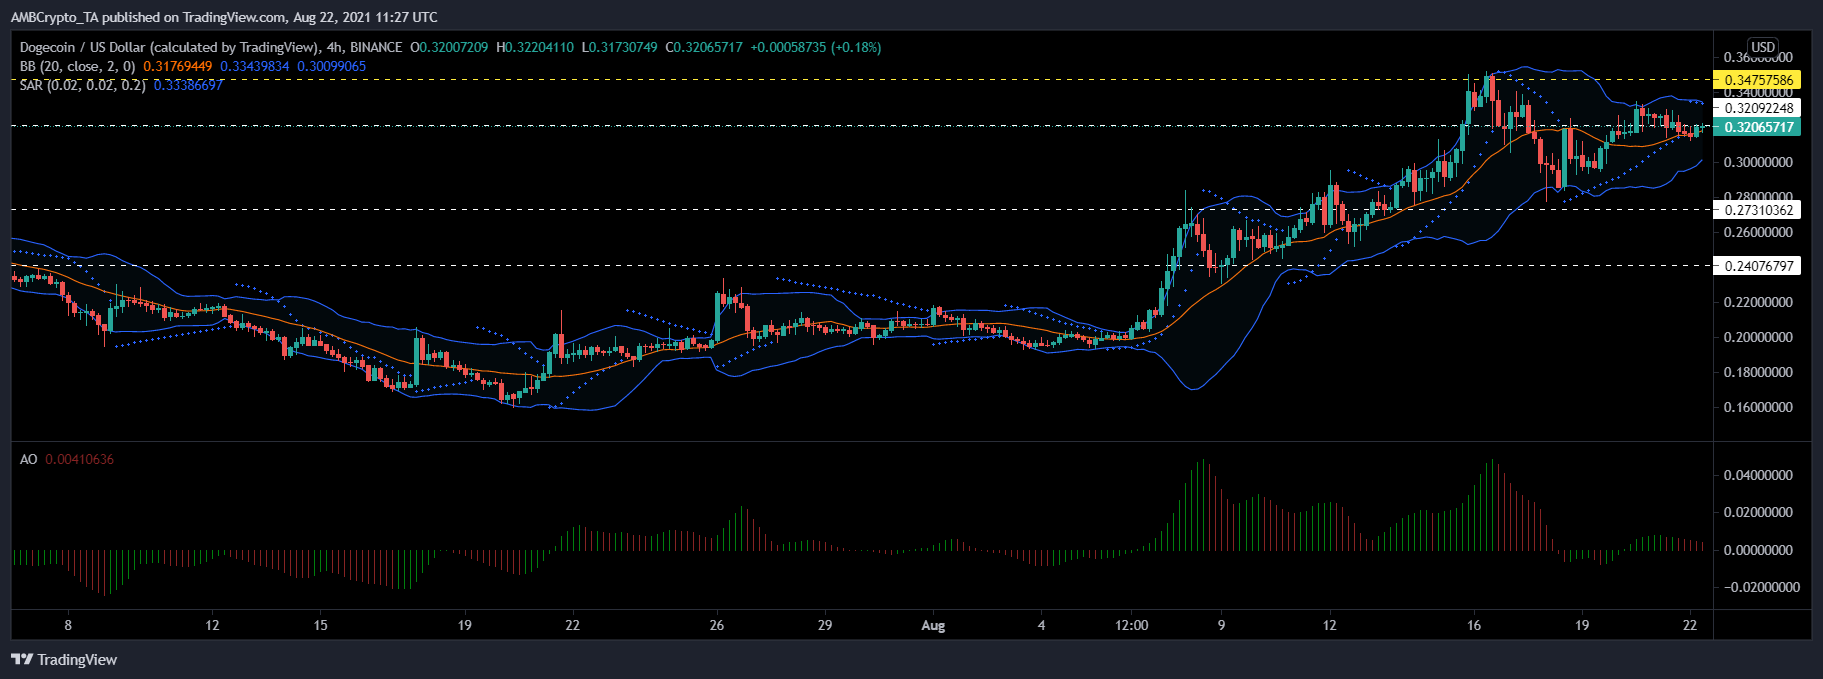 Polkadot, EOS and Dogecoin Price Analysis: 22 August